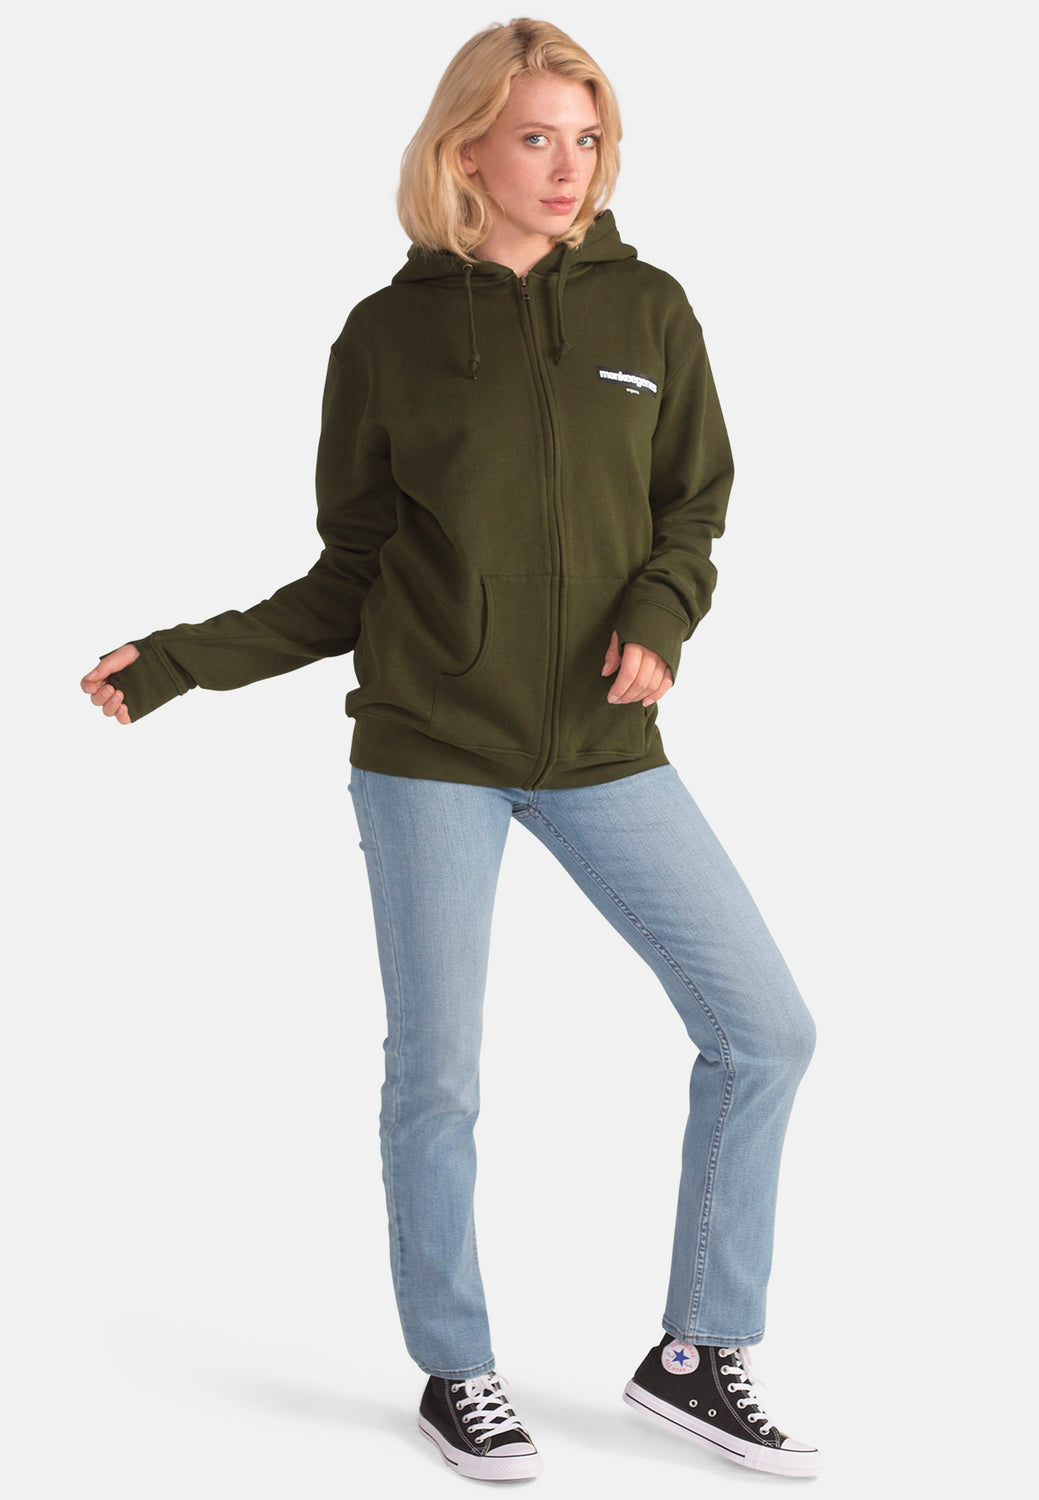 Women's Organic Cotton Oversized Olive Ziphood - Monkee Genes Organic Jeans Denim - Women's Hoodie Monkee Genes Official  Monkee Genes Official